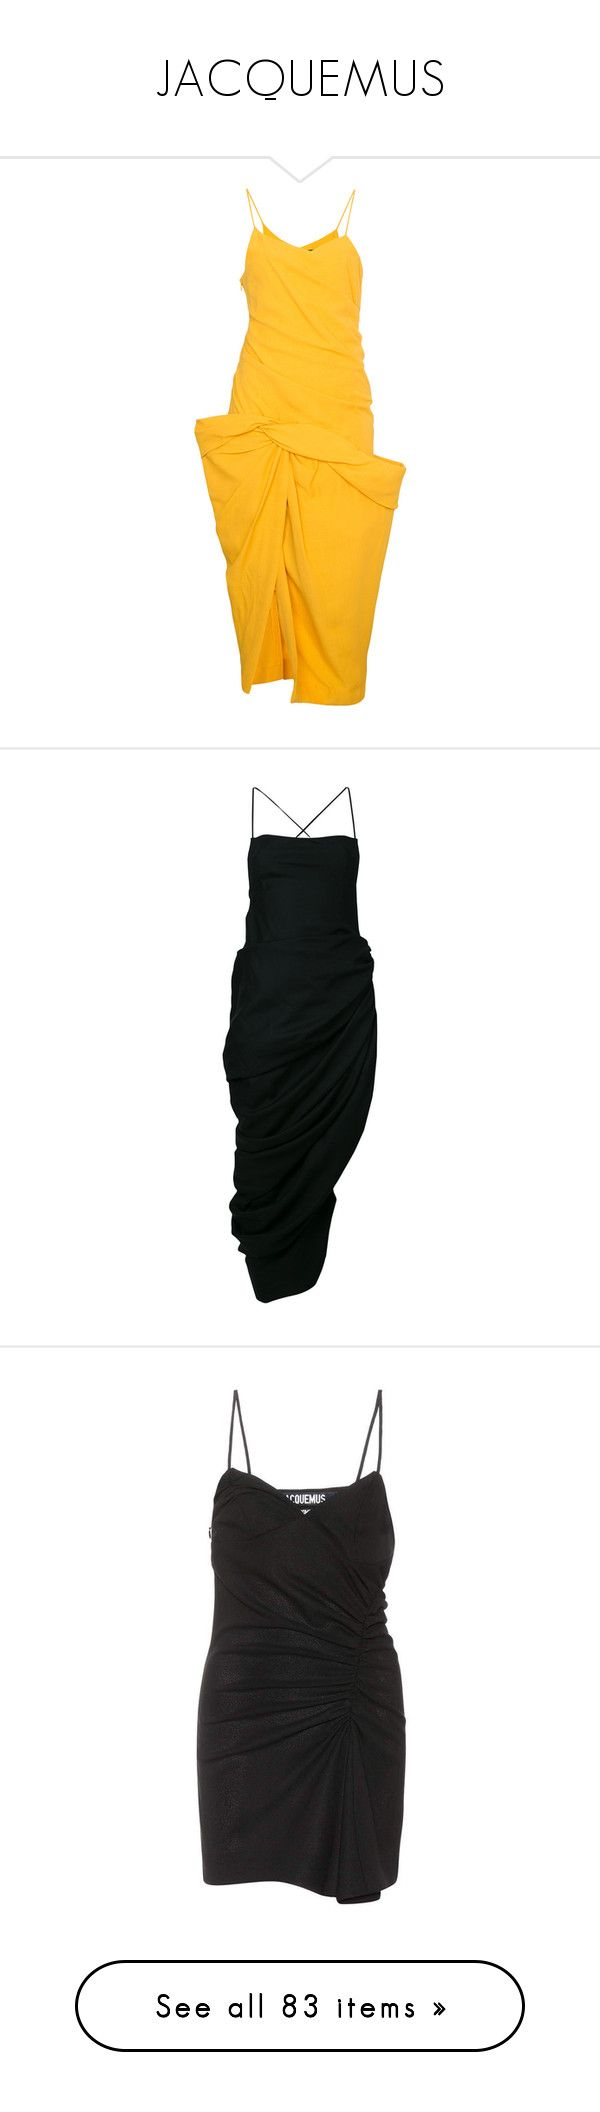 """JACQUEMUS"" by mari-sv ❤ liked on Polyvore featuring dresses, strap dress, strappy dress, yellow dress, draped dress, jacquemus, black, mid length dresses, open back dresses and square neck spaghetti strap dress"